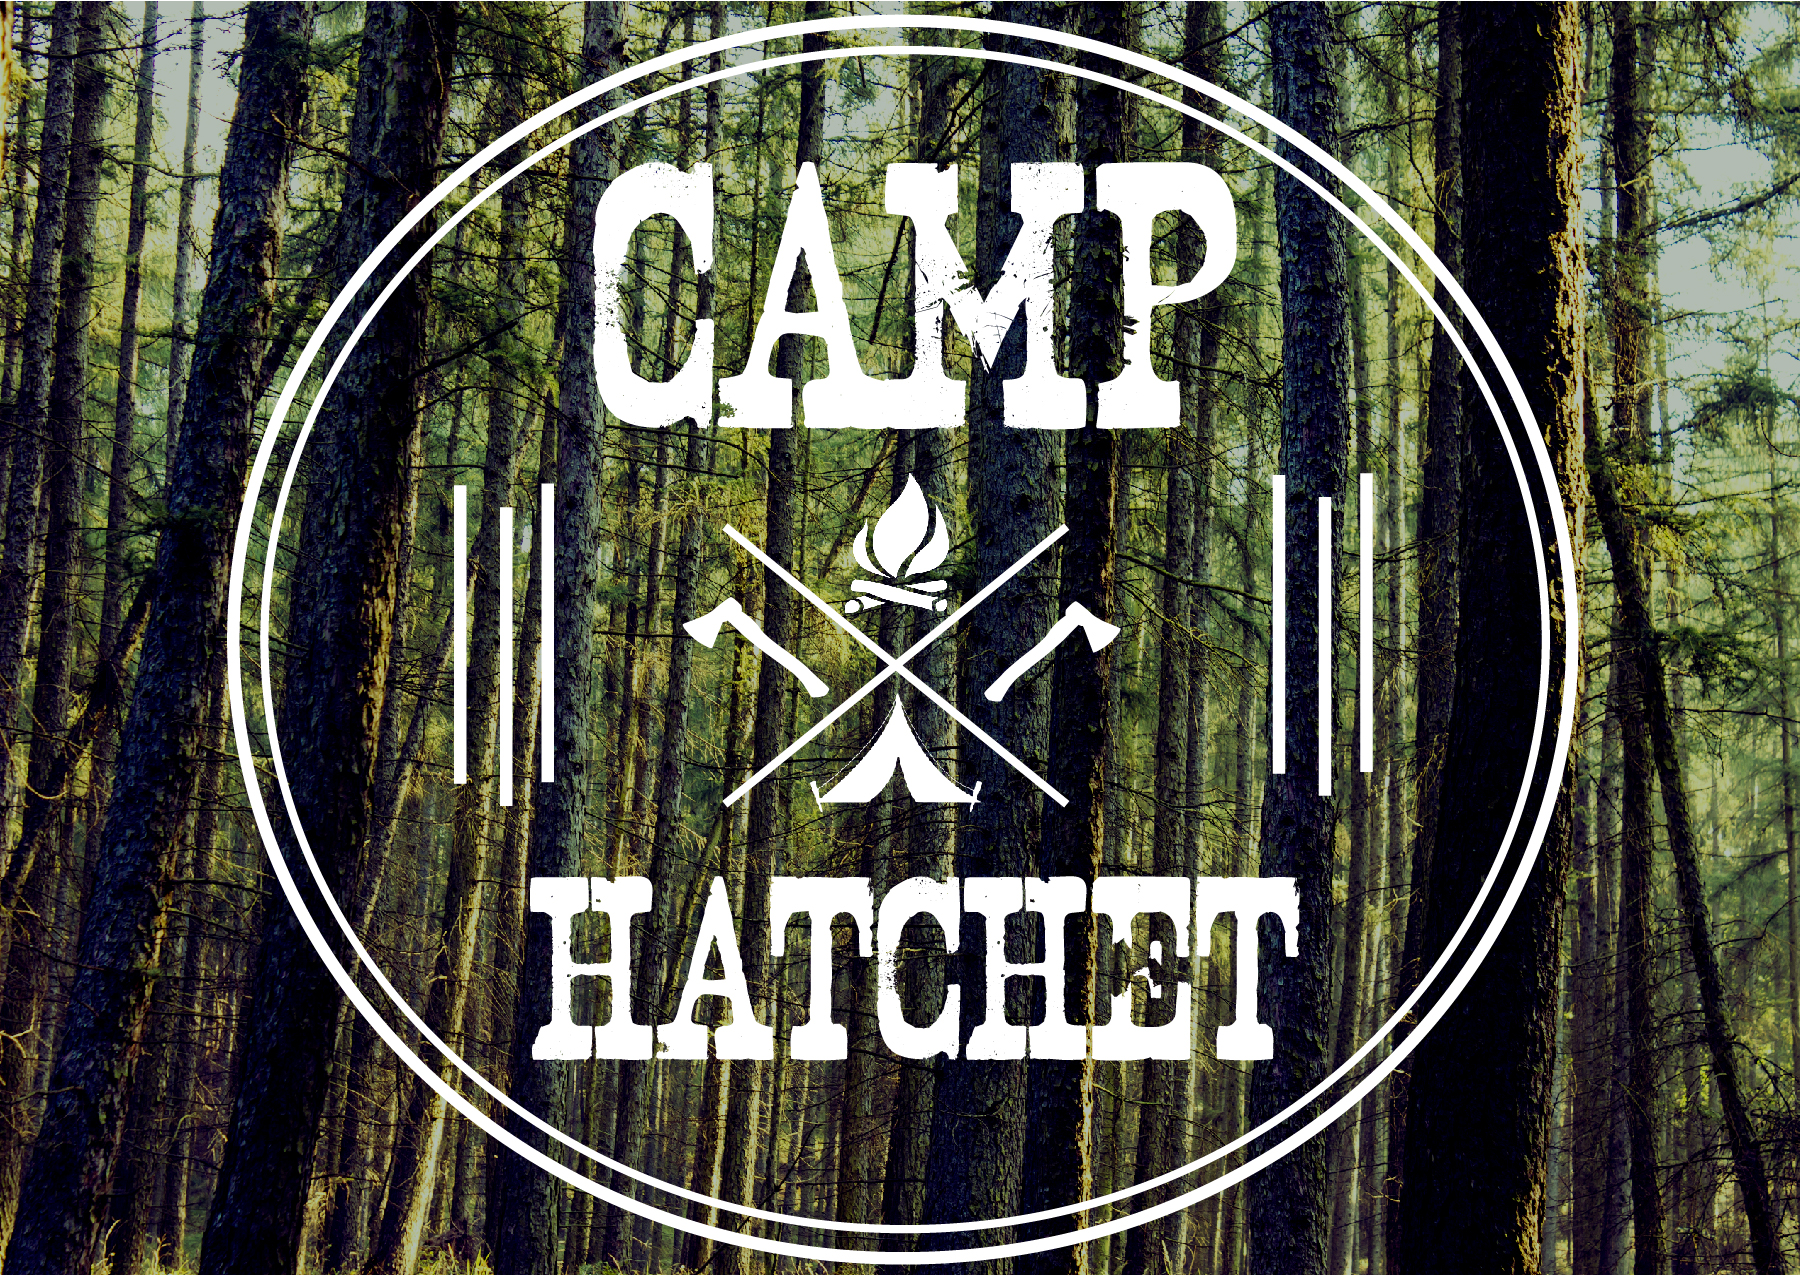 Camp hatchet logo no date 01